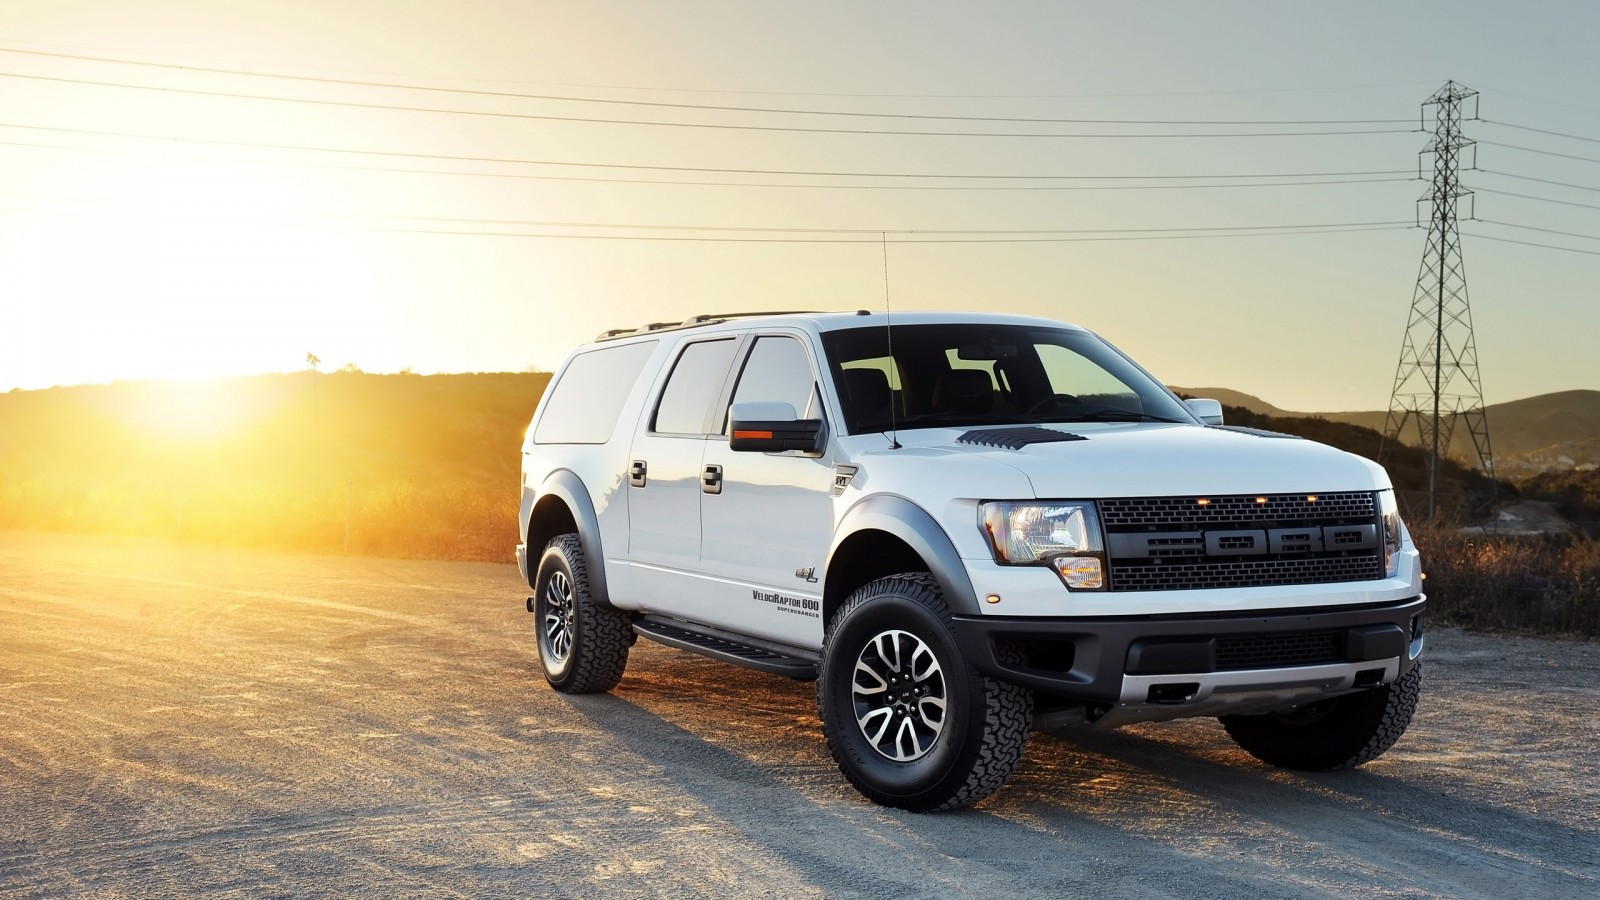 Ford Velociraptor Suv >> 2013 Ford Velociraptor By Hennessey Wallpaper | HD Car Wallpapers| ID #3746